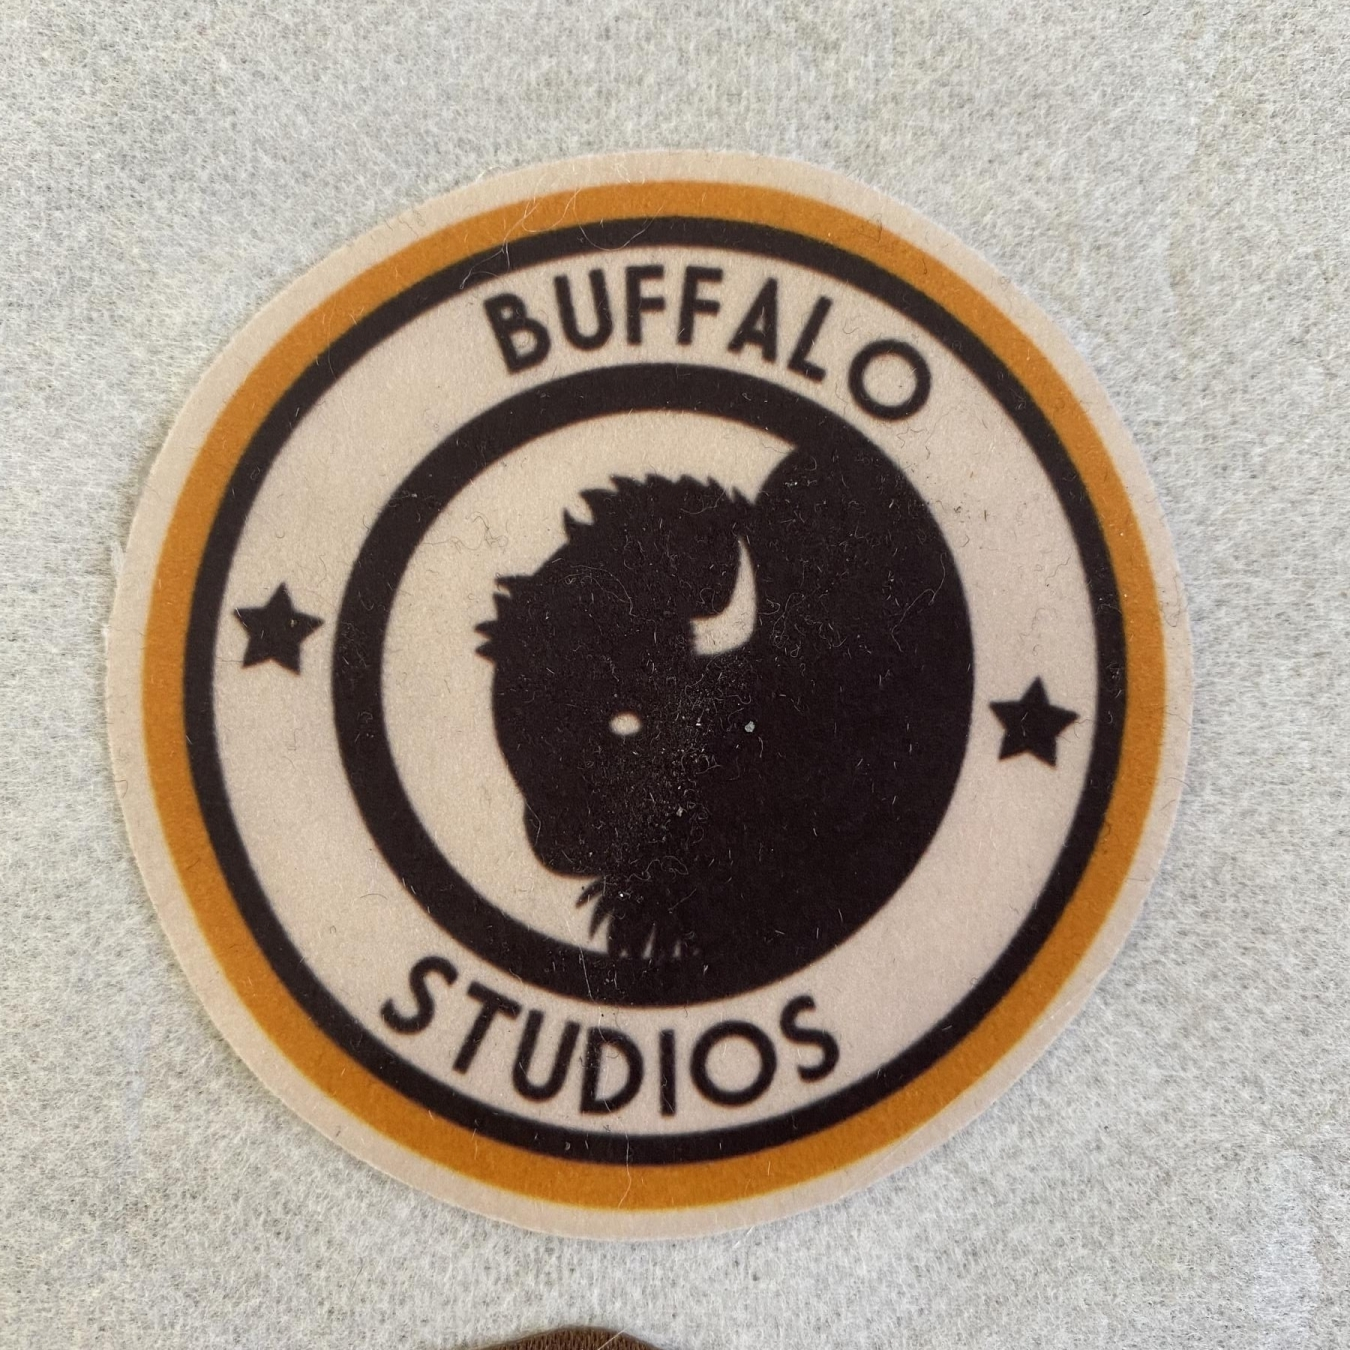 Buffalo Studios Patch Sign Studios